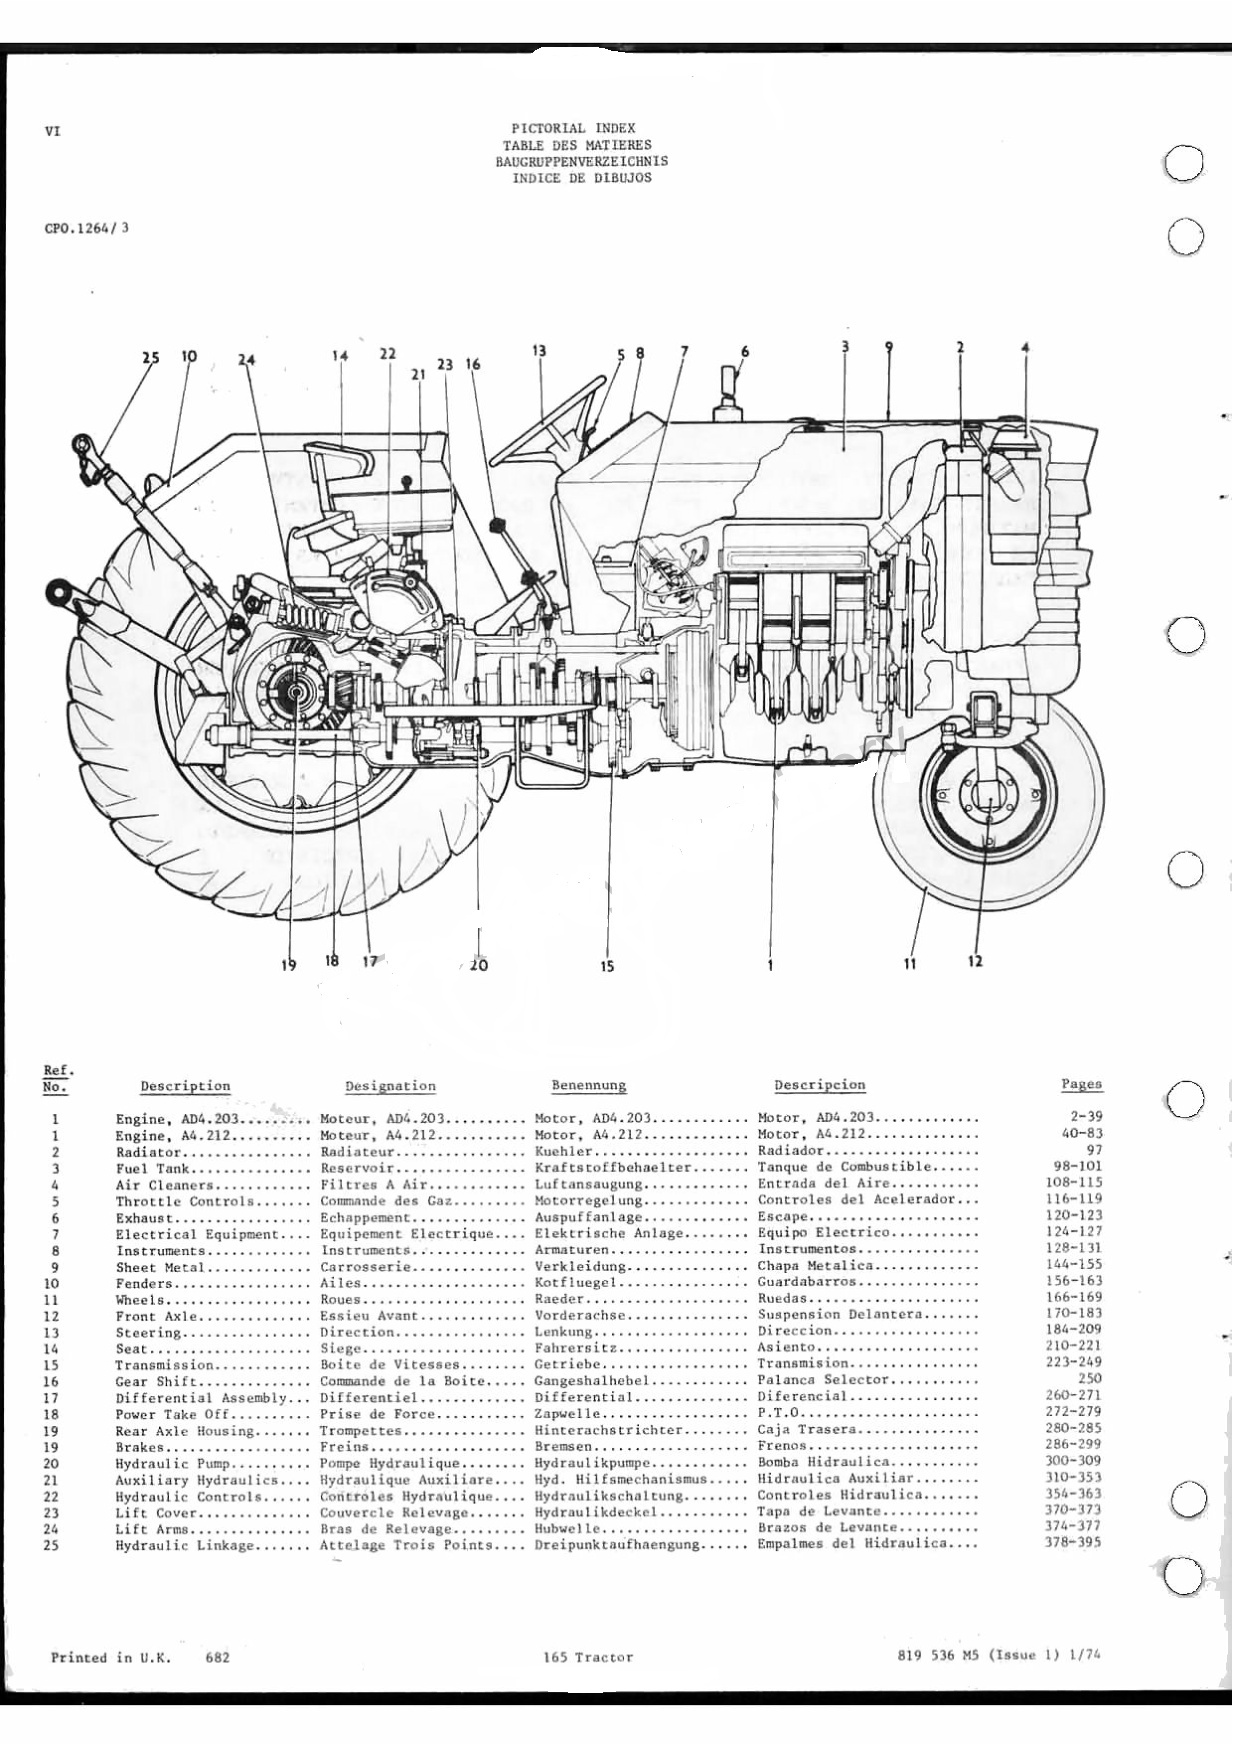 Mf 245 Tractor Wiring Diagram Mf 1085 Wiring Diagram